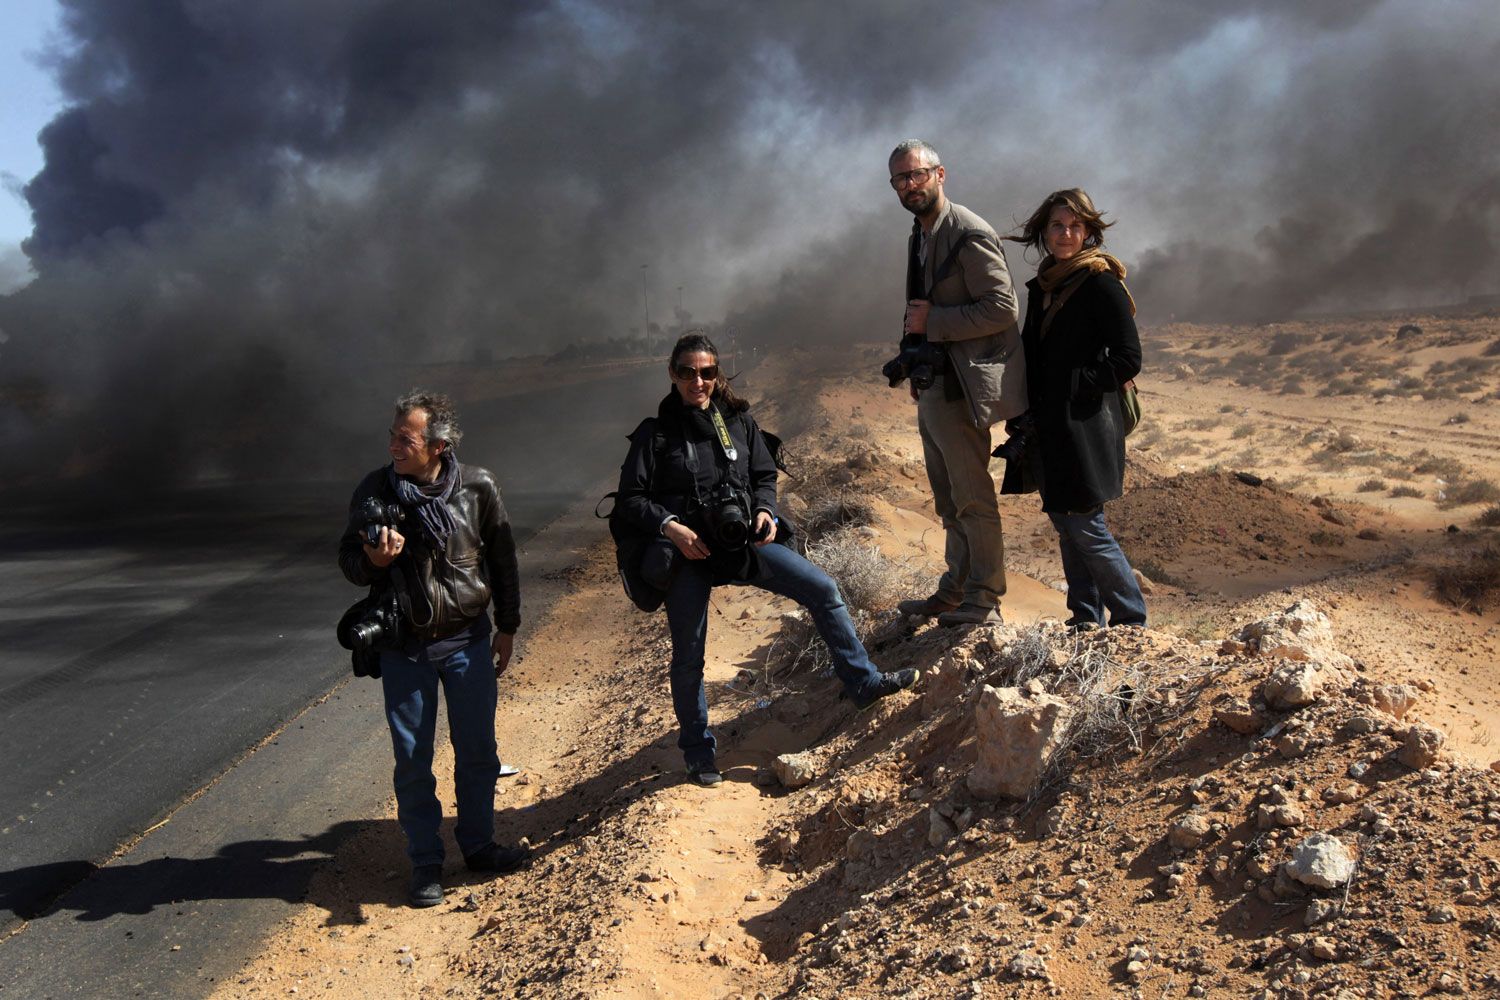 TIME contract photographer Yuri Kozyrev, Lynsey Addario, Tyler Hicks and Nicki Sobecki in Ras Lanuf, Libya, March 11, 2011.